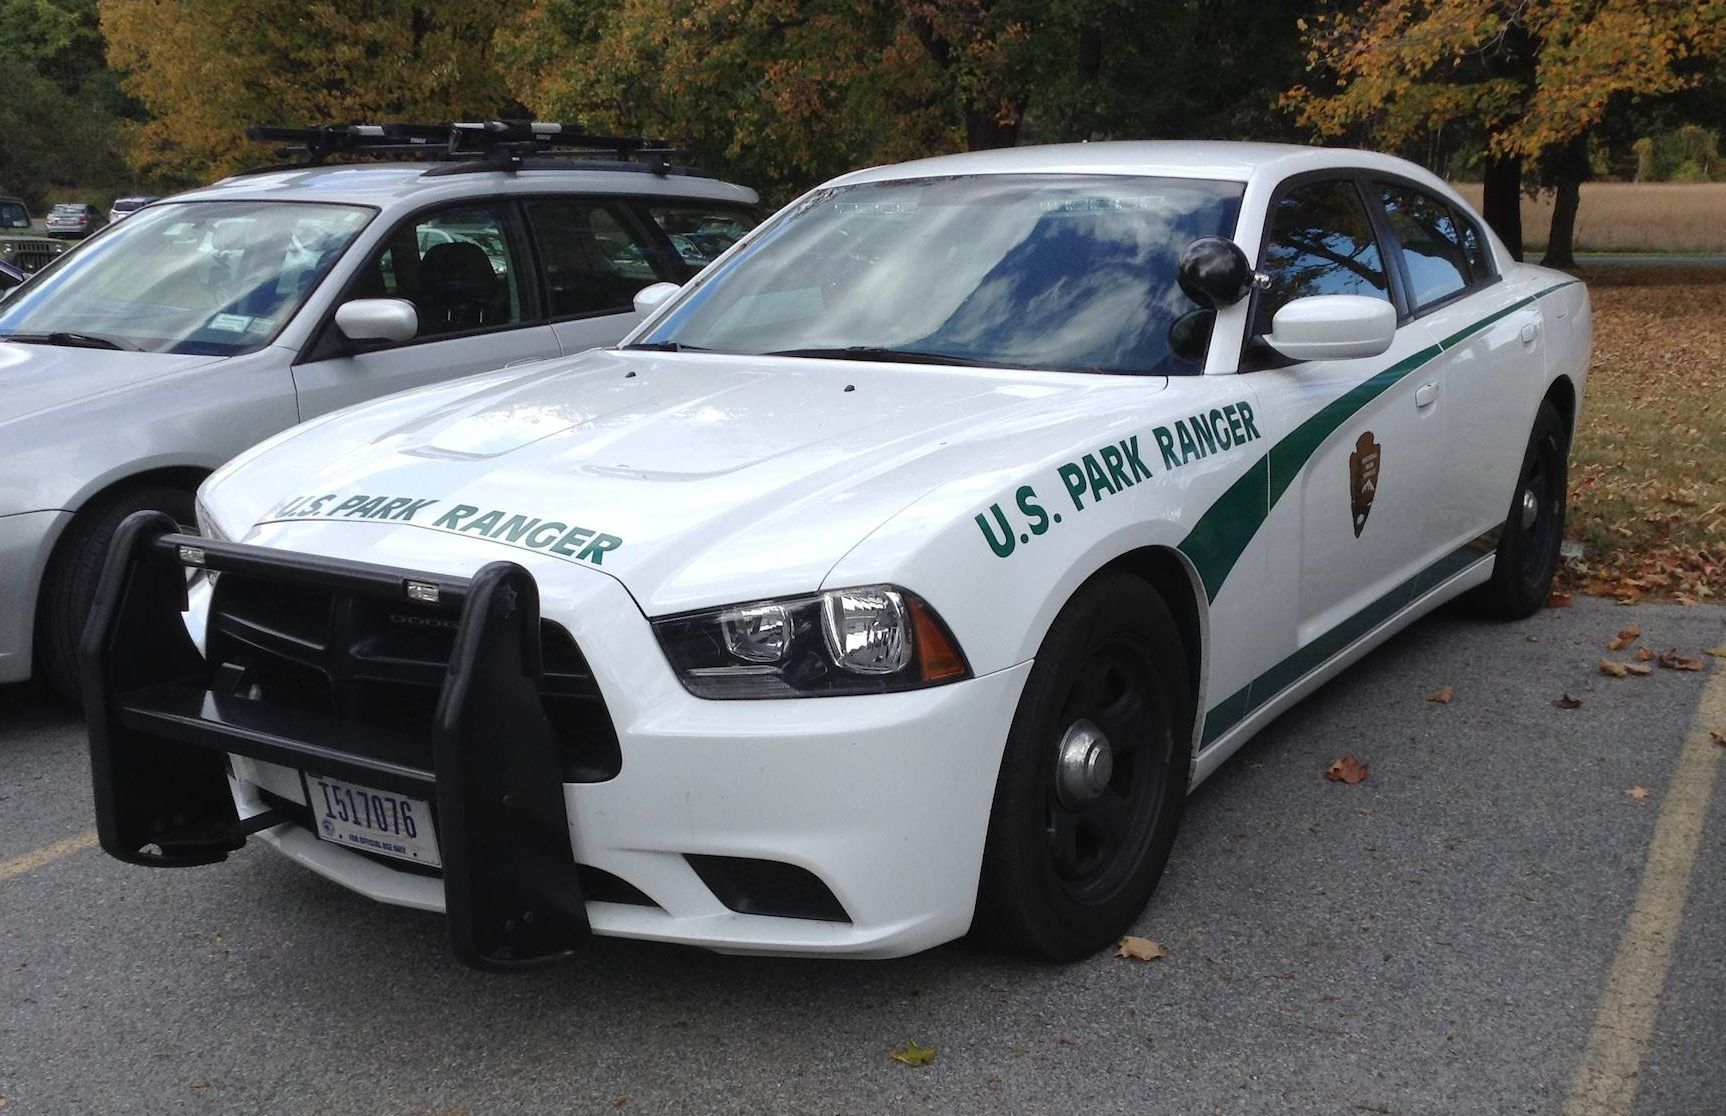 National Park Service Nps Dodge Charger Law Enforcement Vehicle Police Cars Emergency Vehicles Police